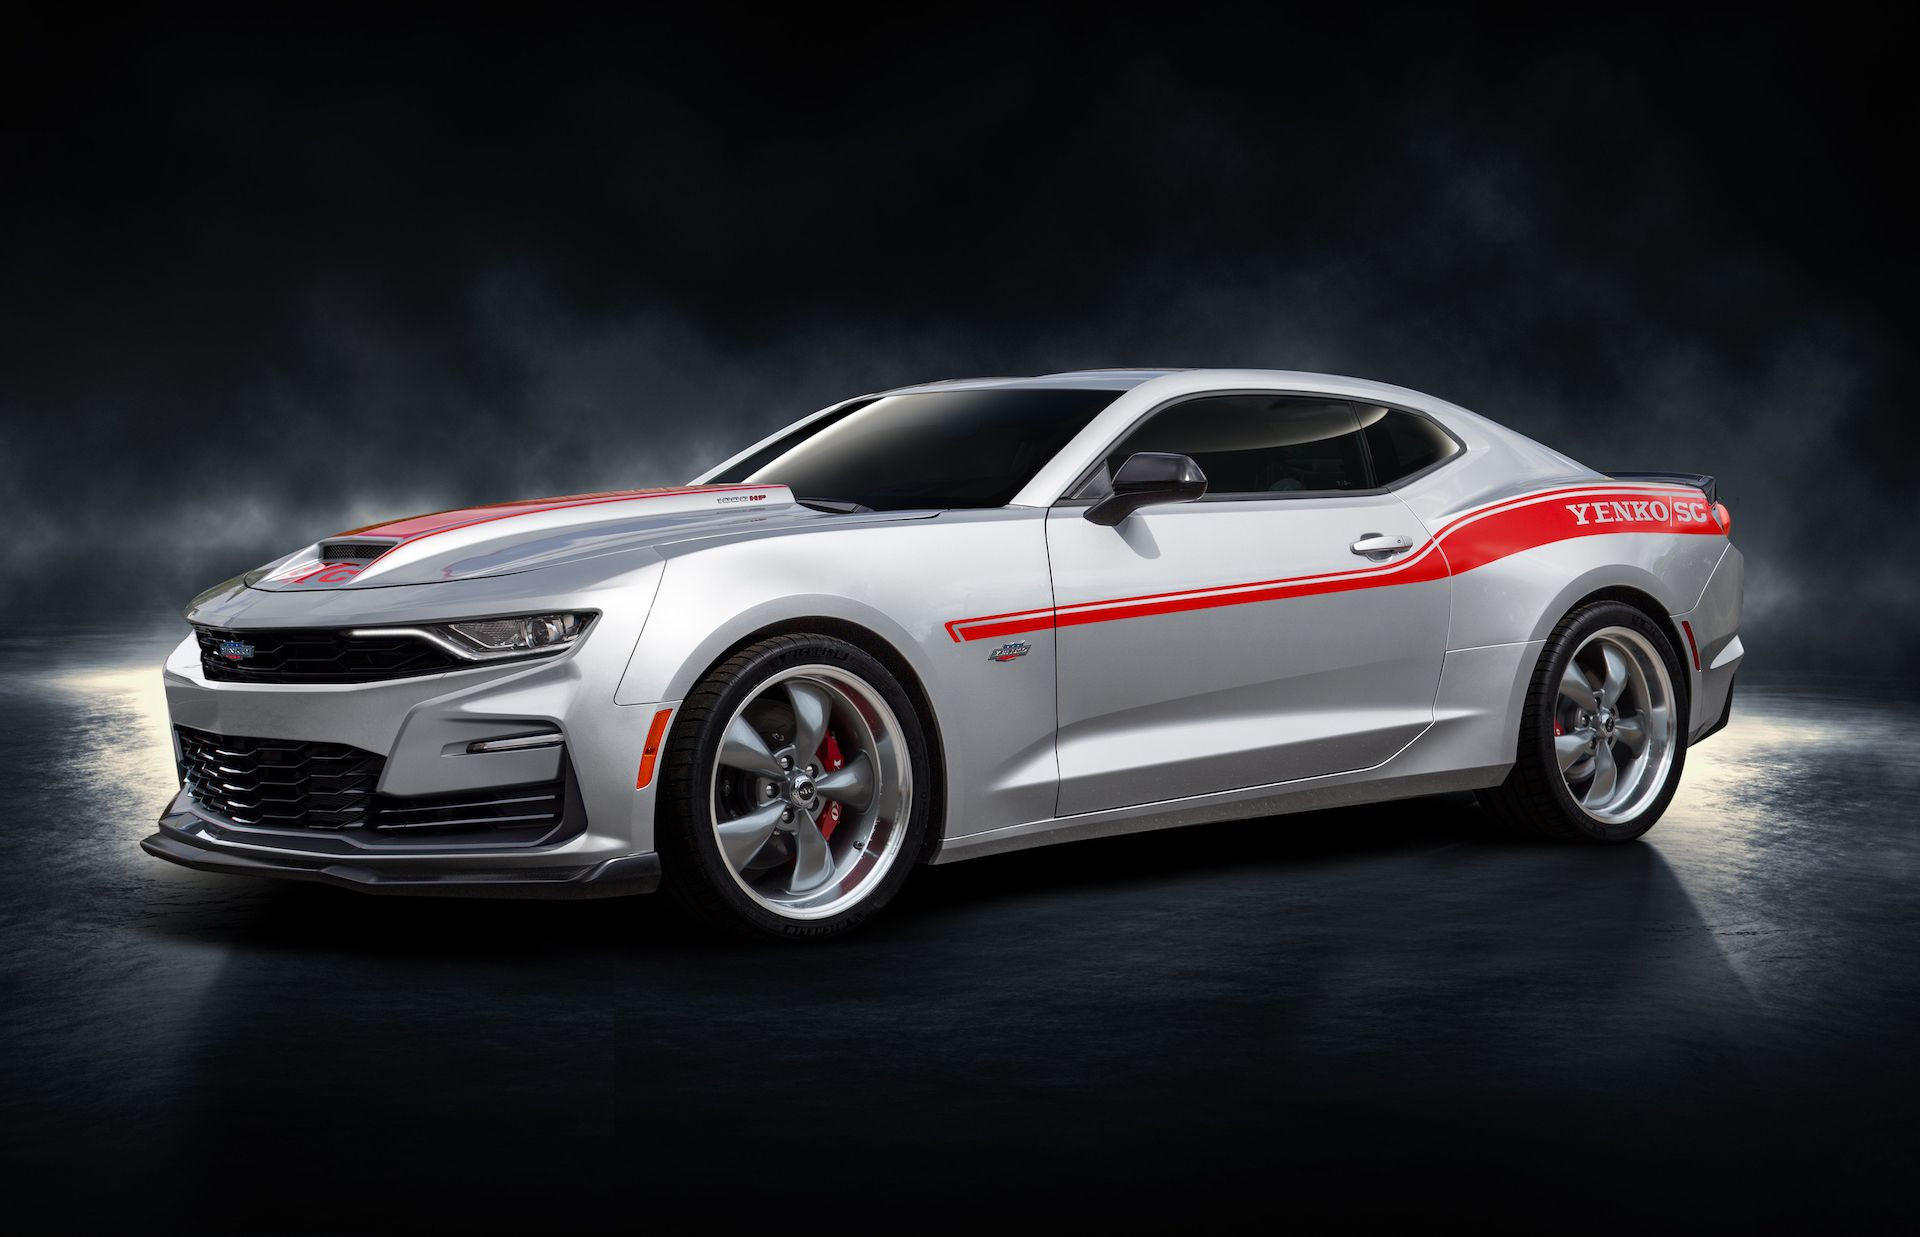 The 2020 Yenko/SC Camaro Is a 1000-HP Tire-Shredder That Costs $70,000